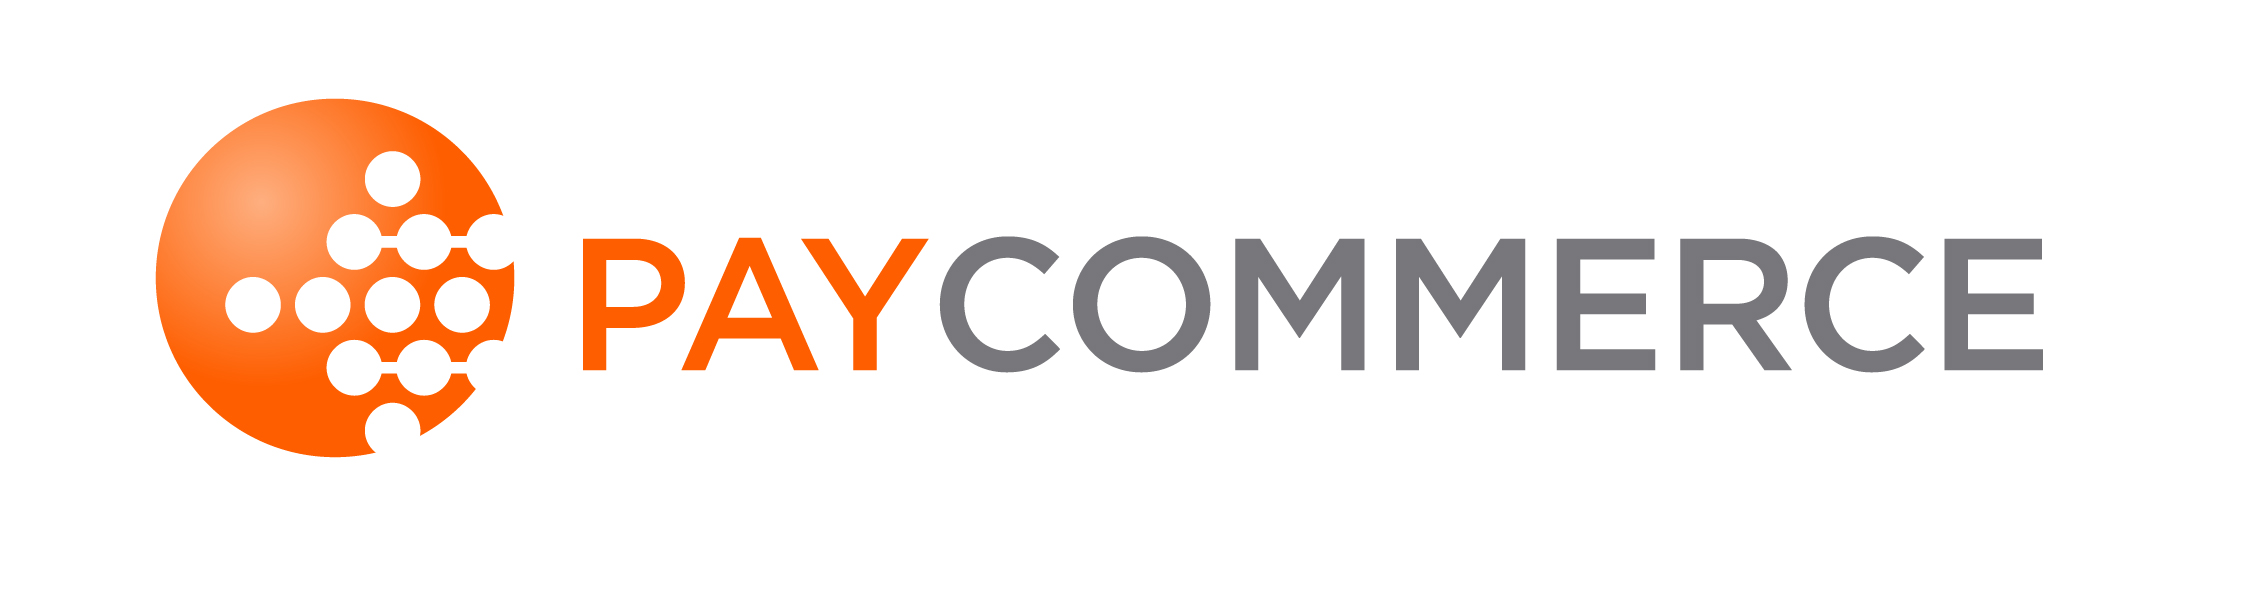 PAY_commerce